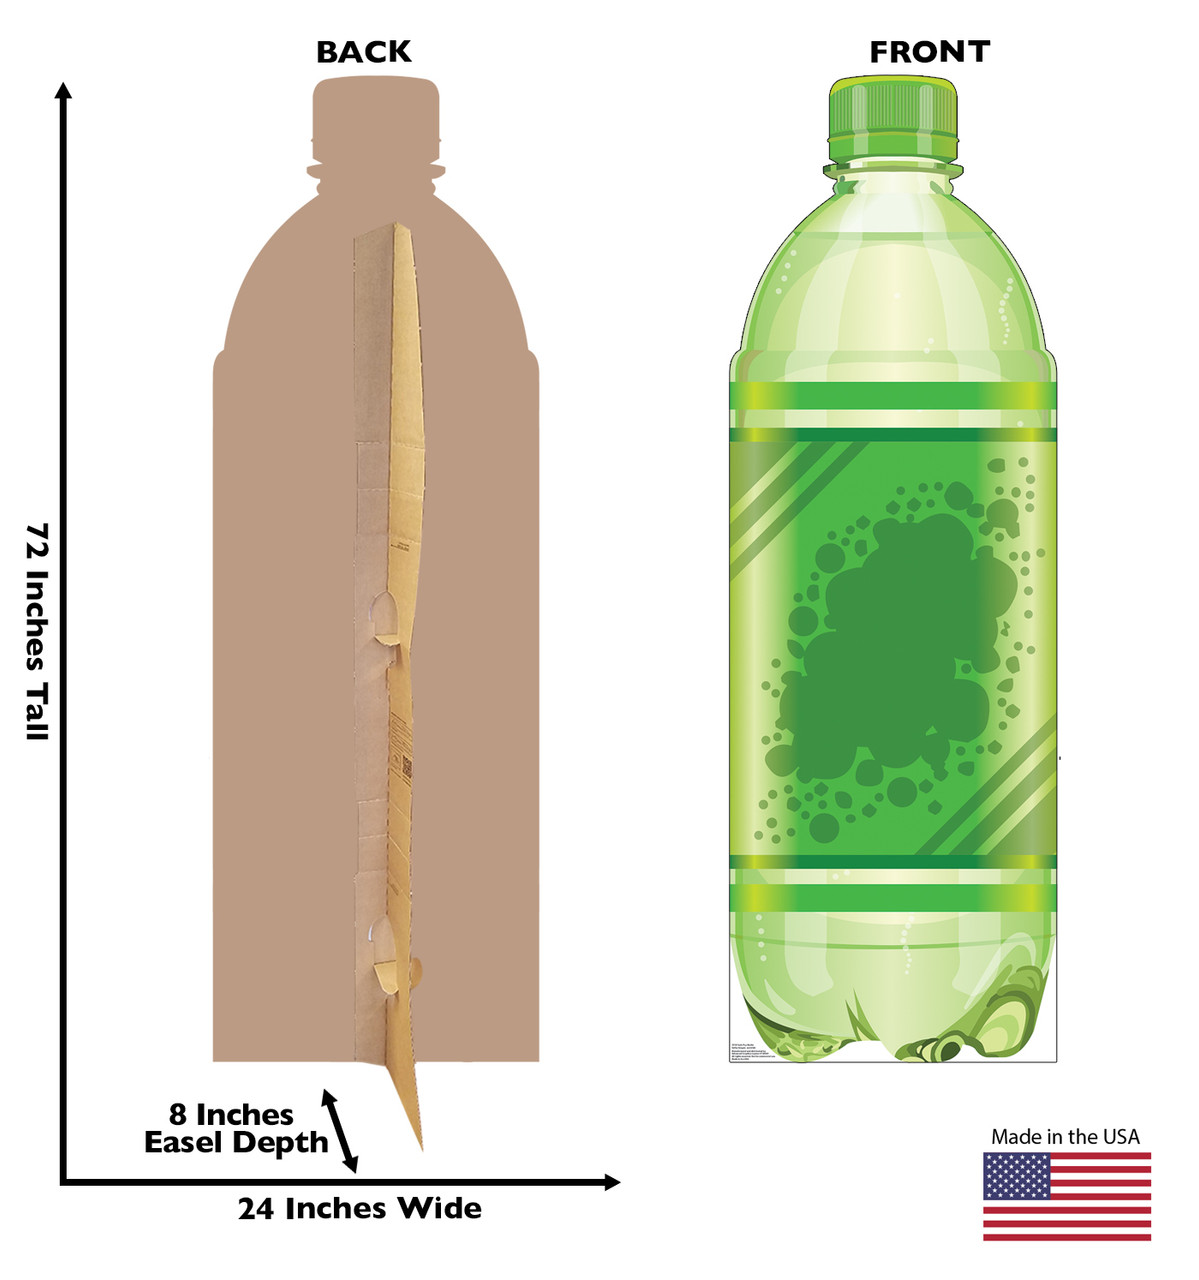 Life-size cardboard standee of a Soda Pop Bottle Front and Back View